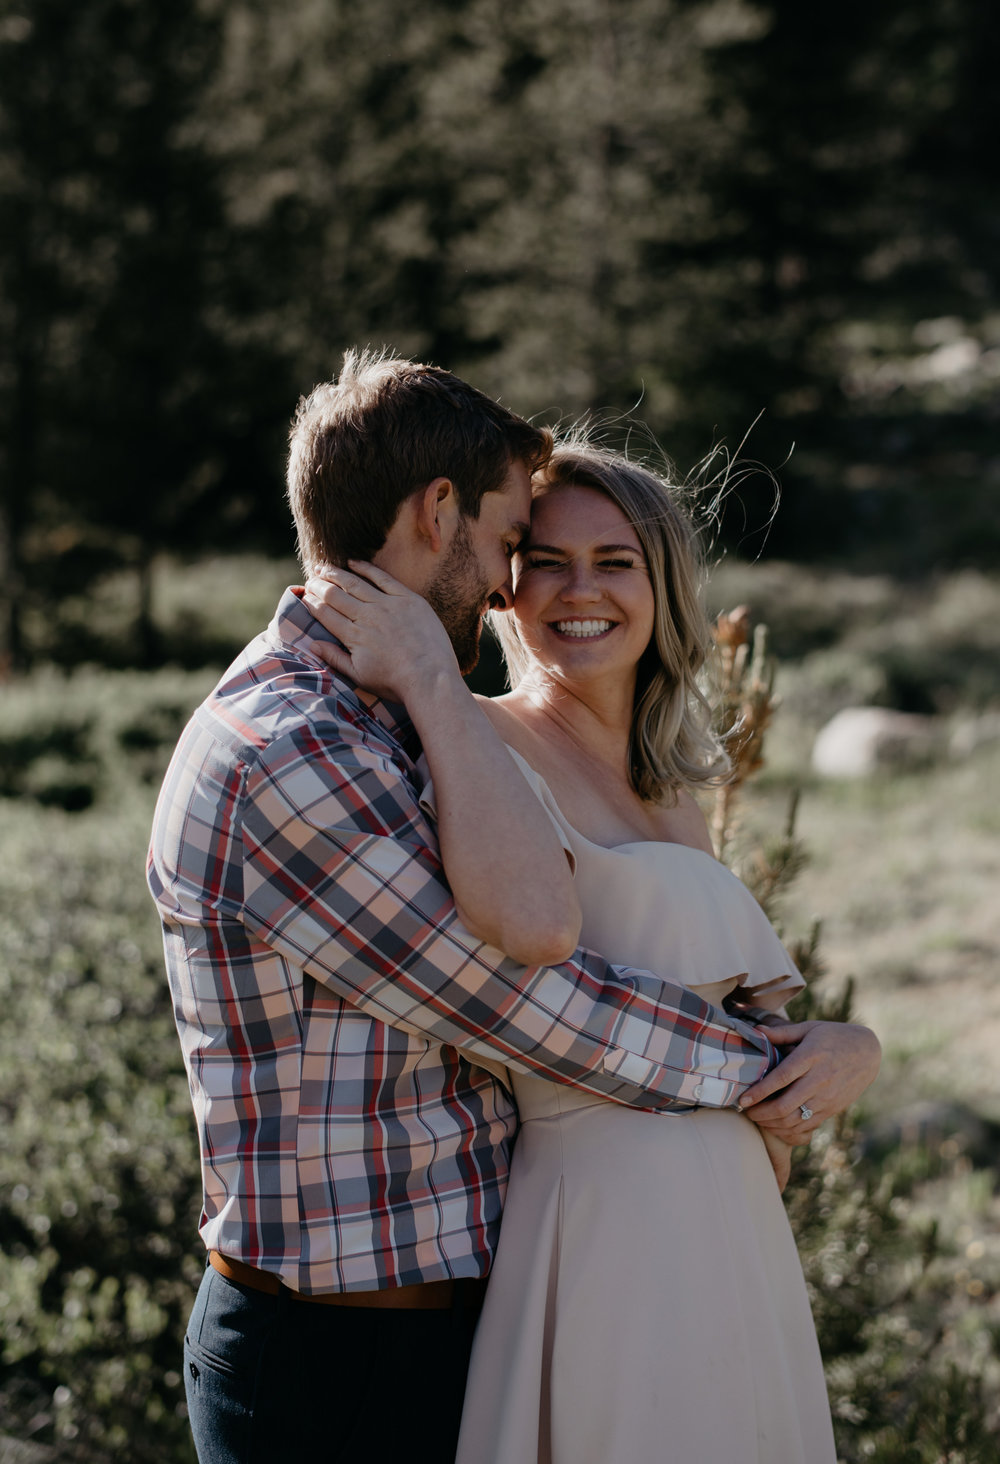 Destination wedding photographer based in Aspen, CO. Colorado mountain wedding photographer.